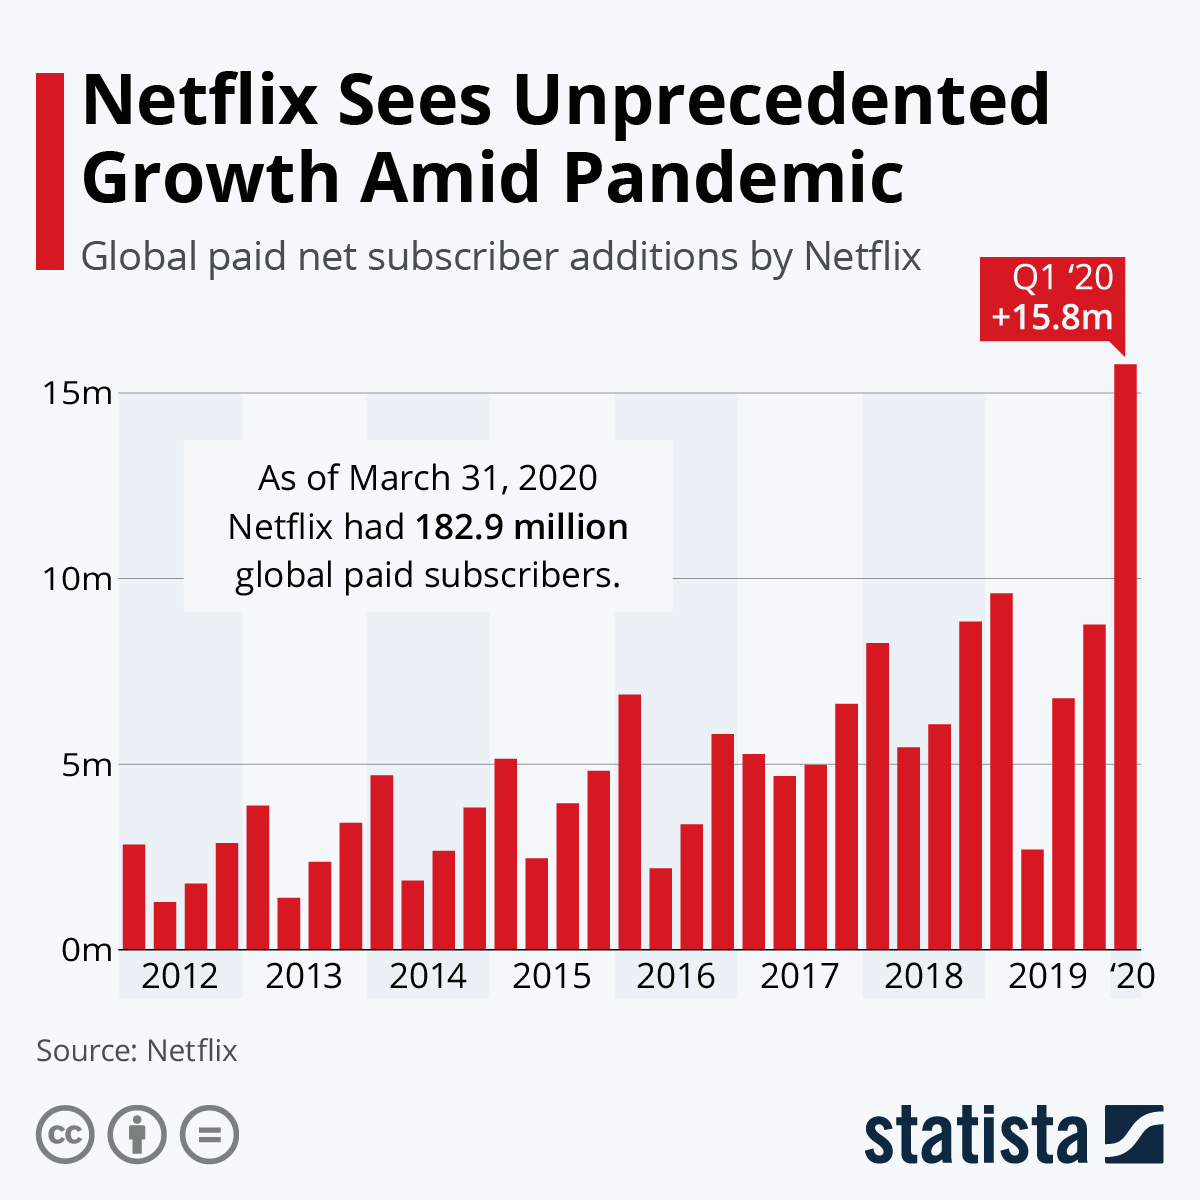 Netflix Growth During COVID-19